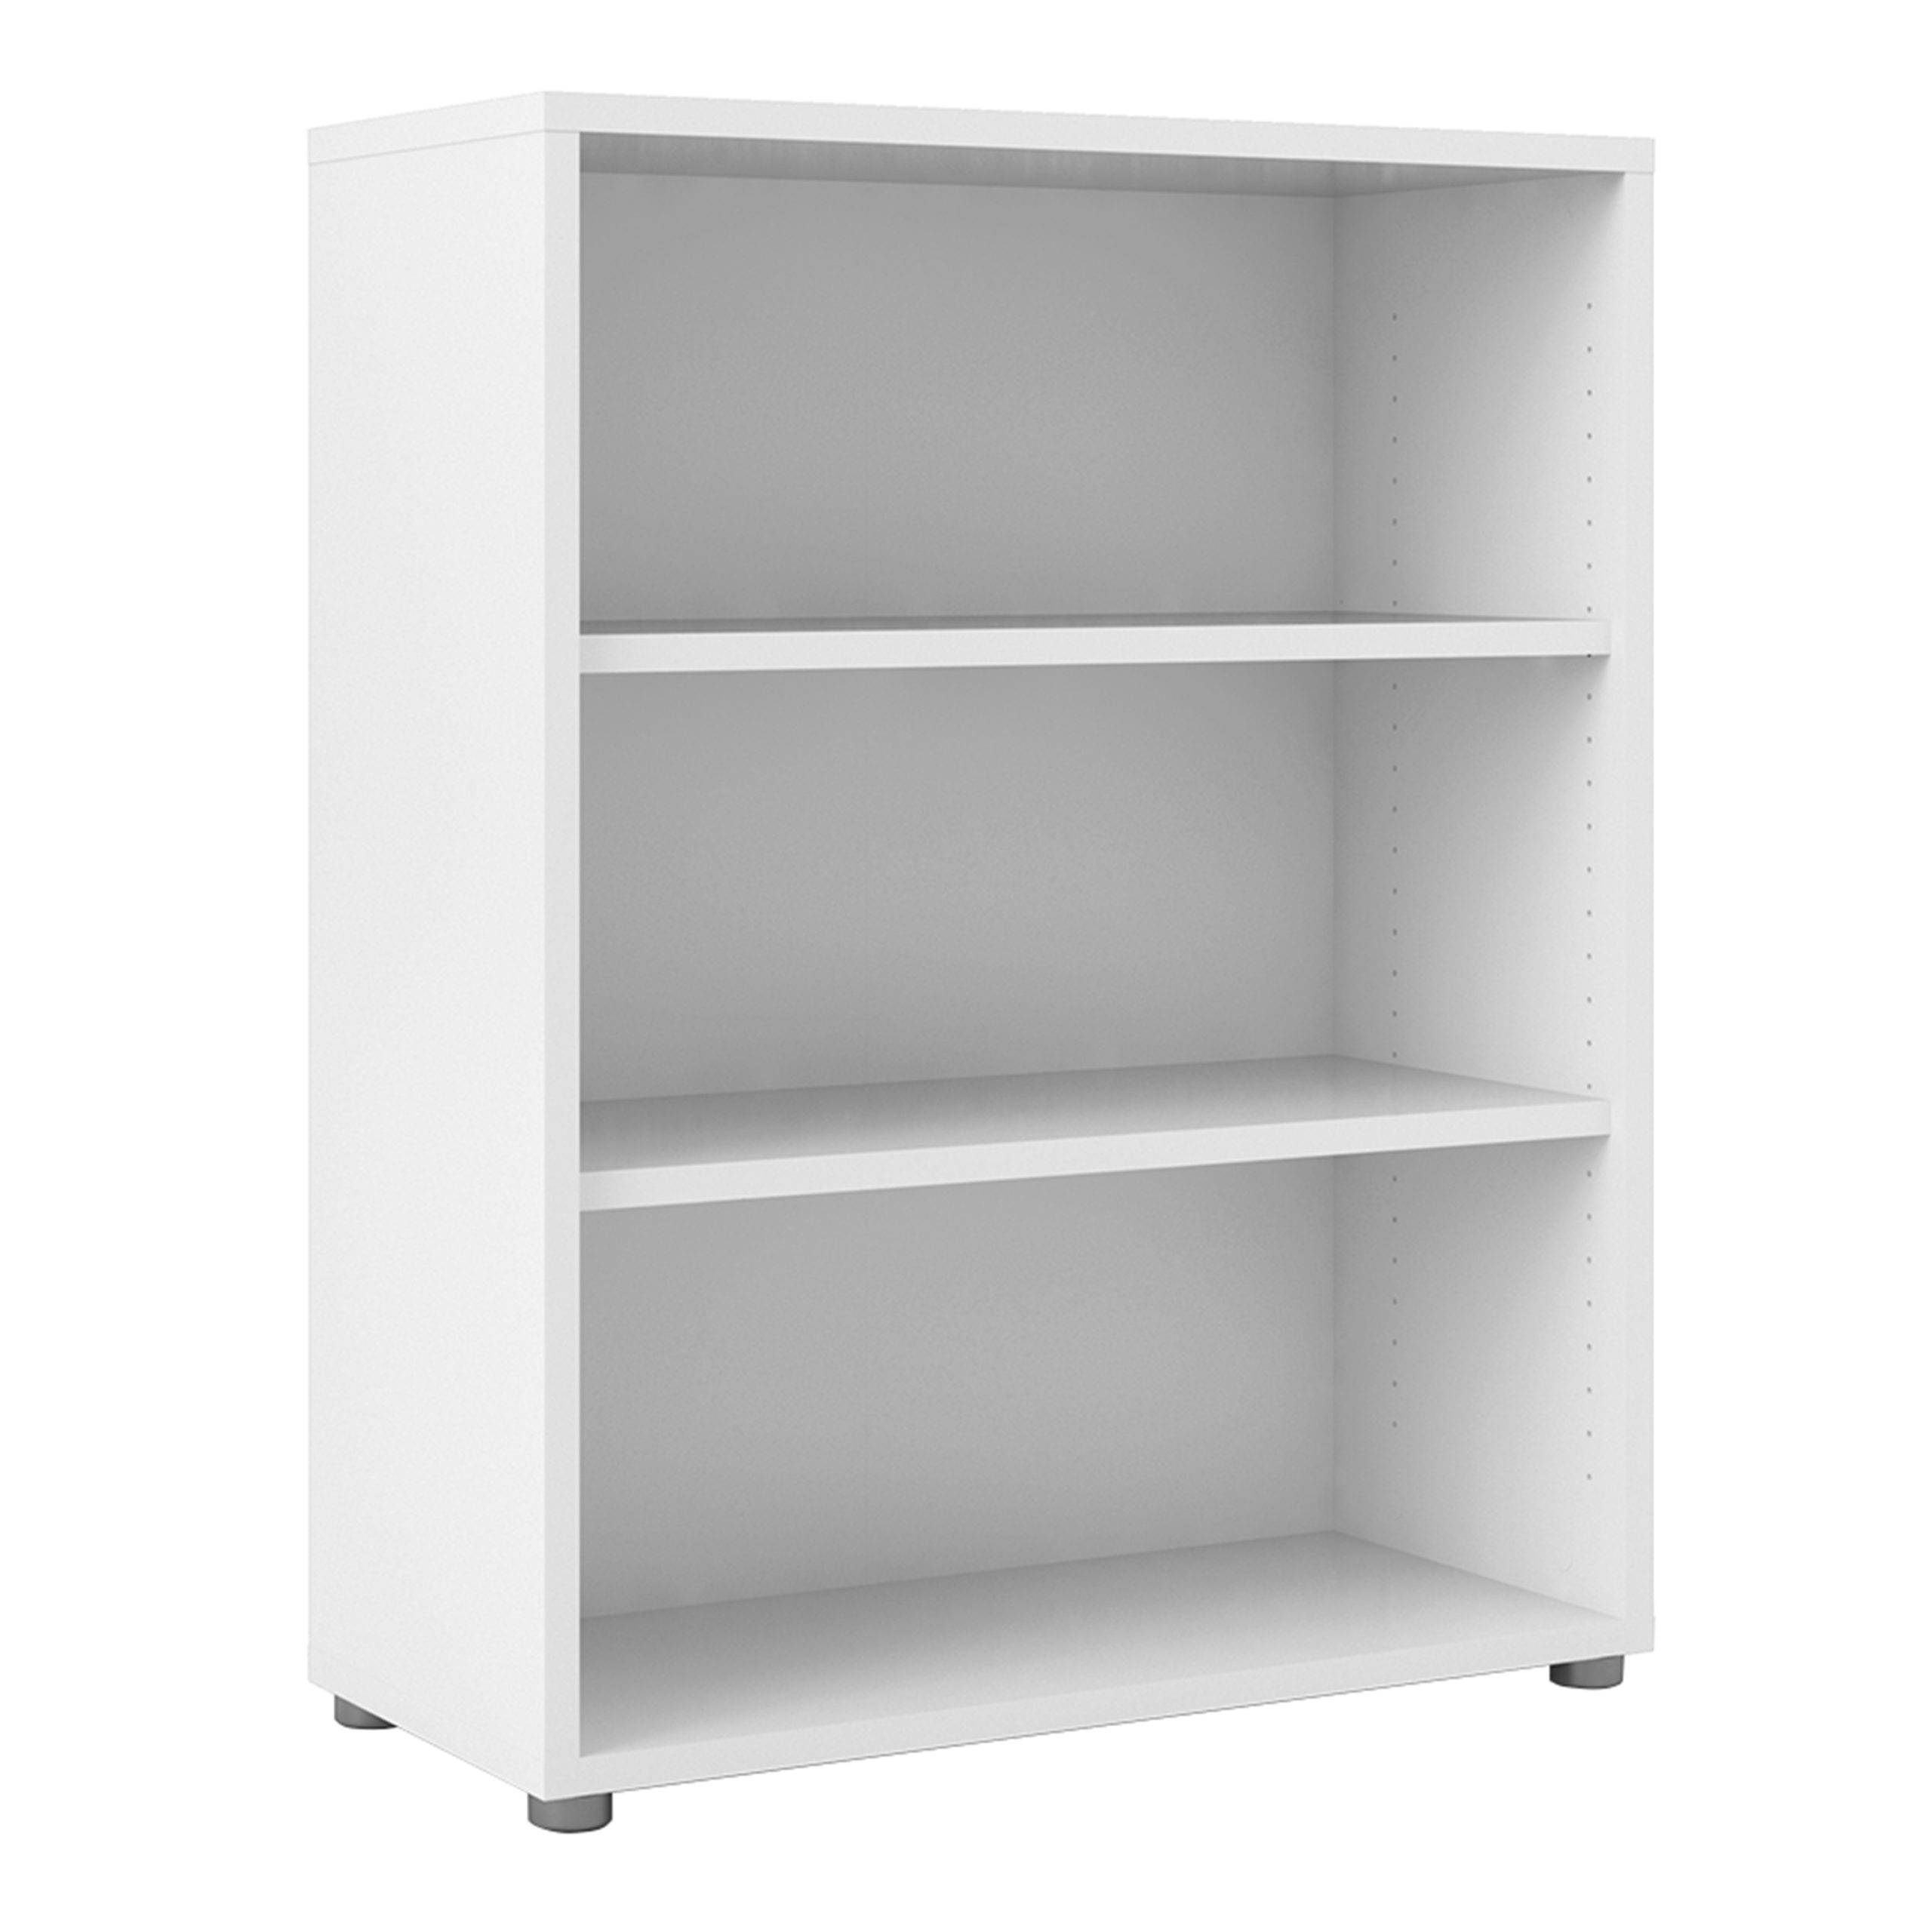 Kansas Bookcase Collection Bookcase 2 Shelves in White   Self Assembly